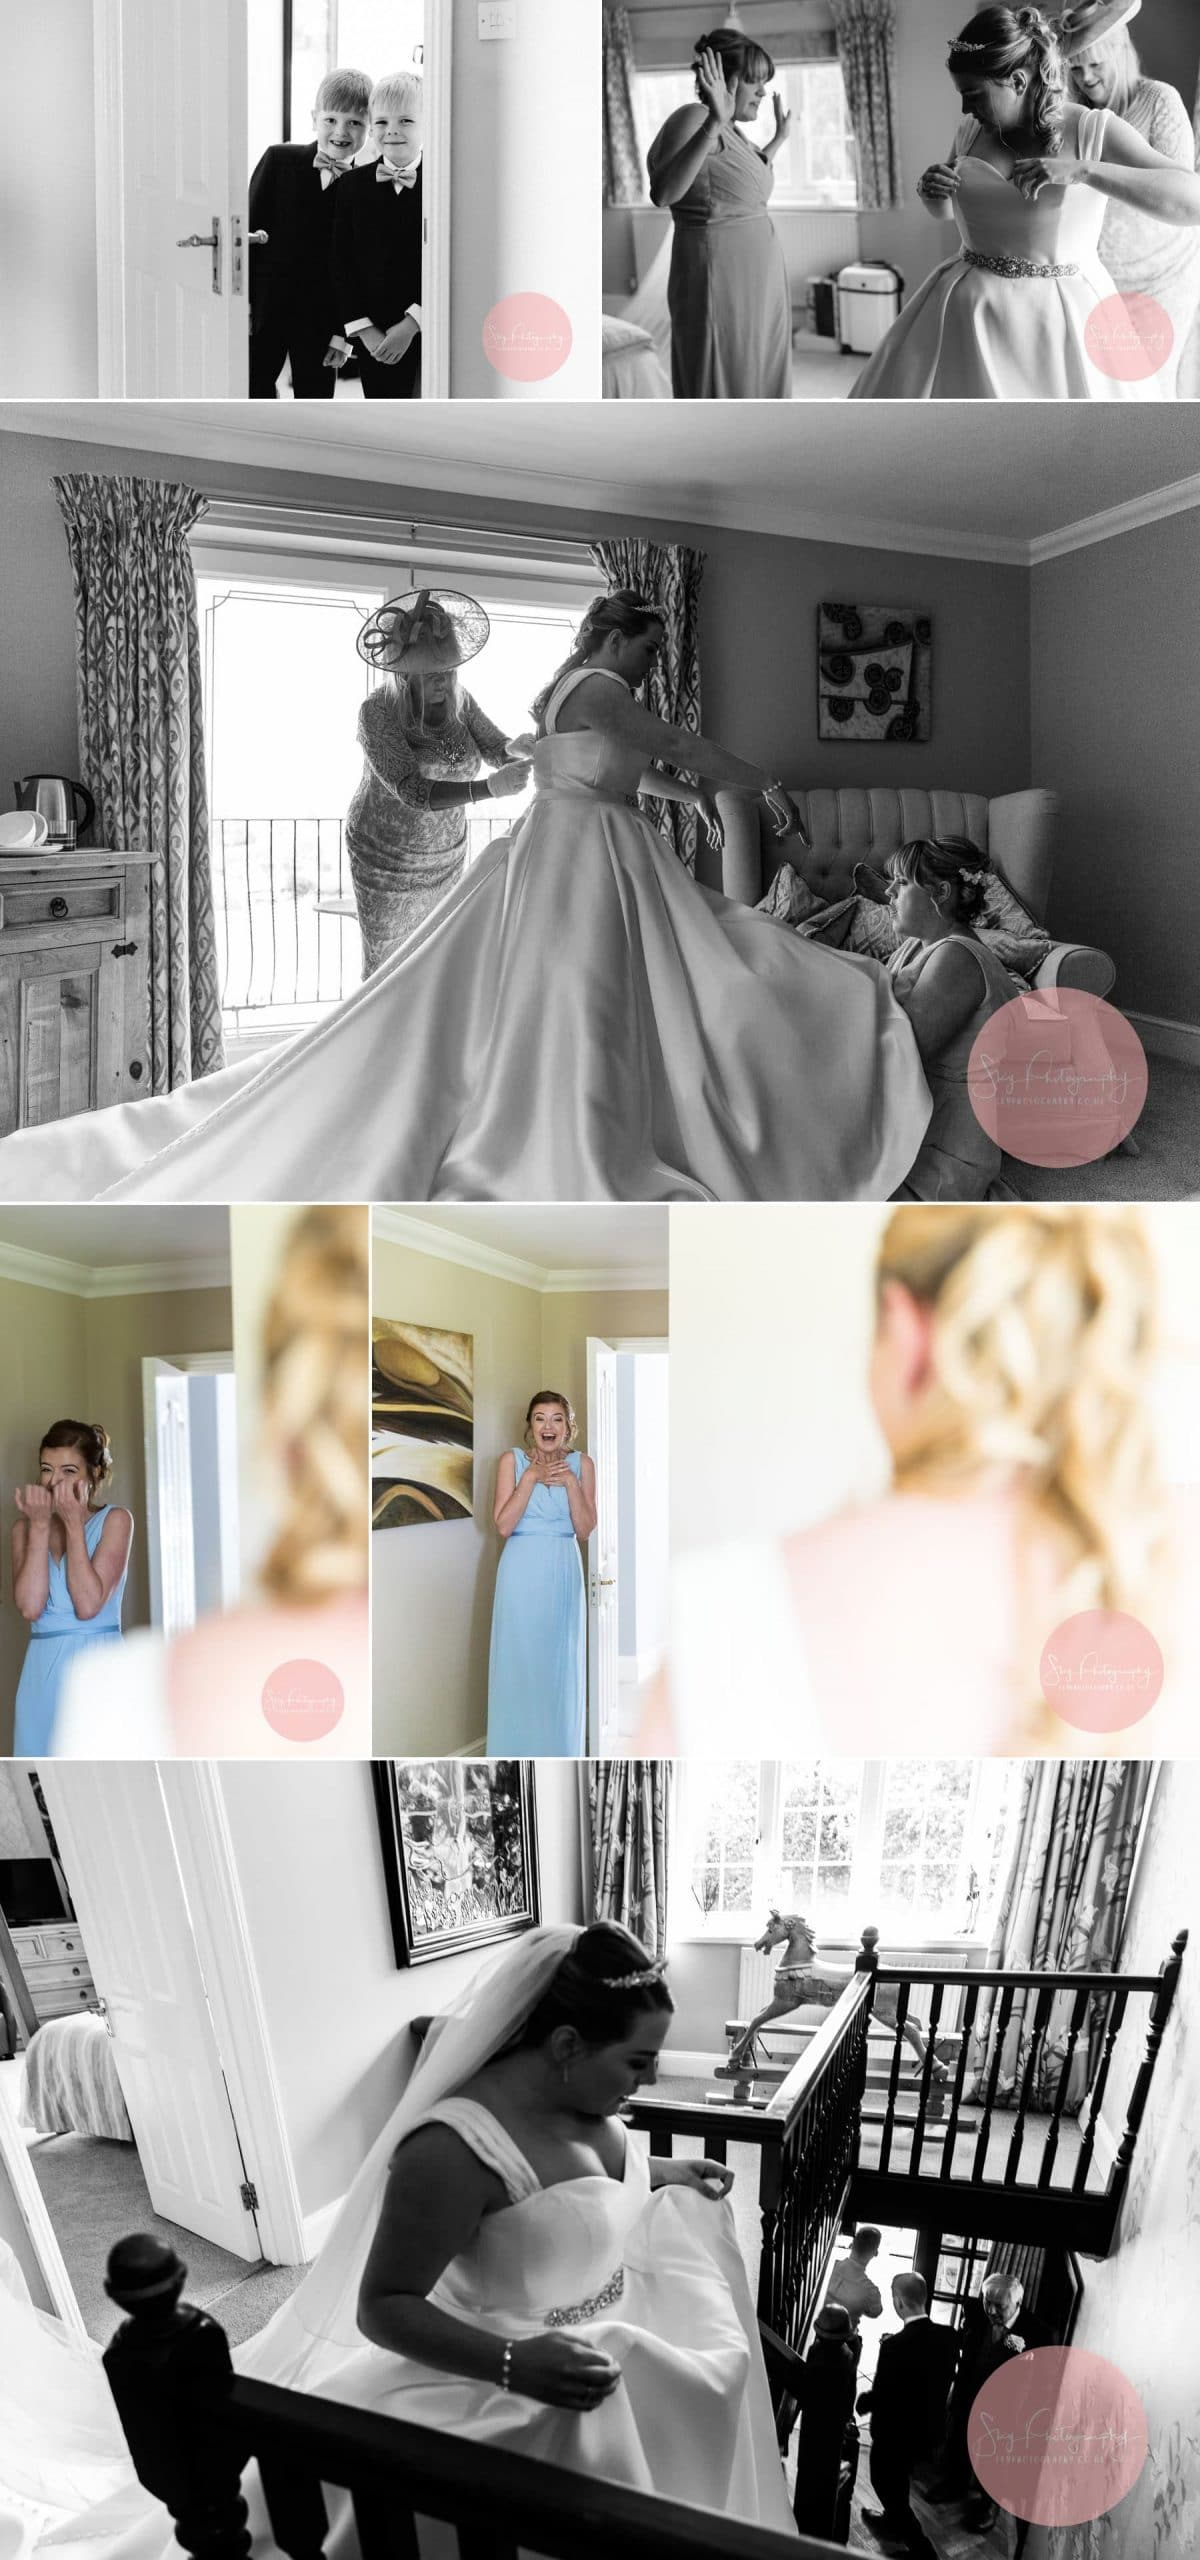 Excited bridesmaid seeing bride dressed for the first time